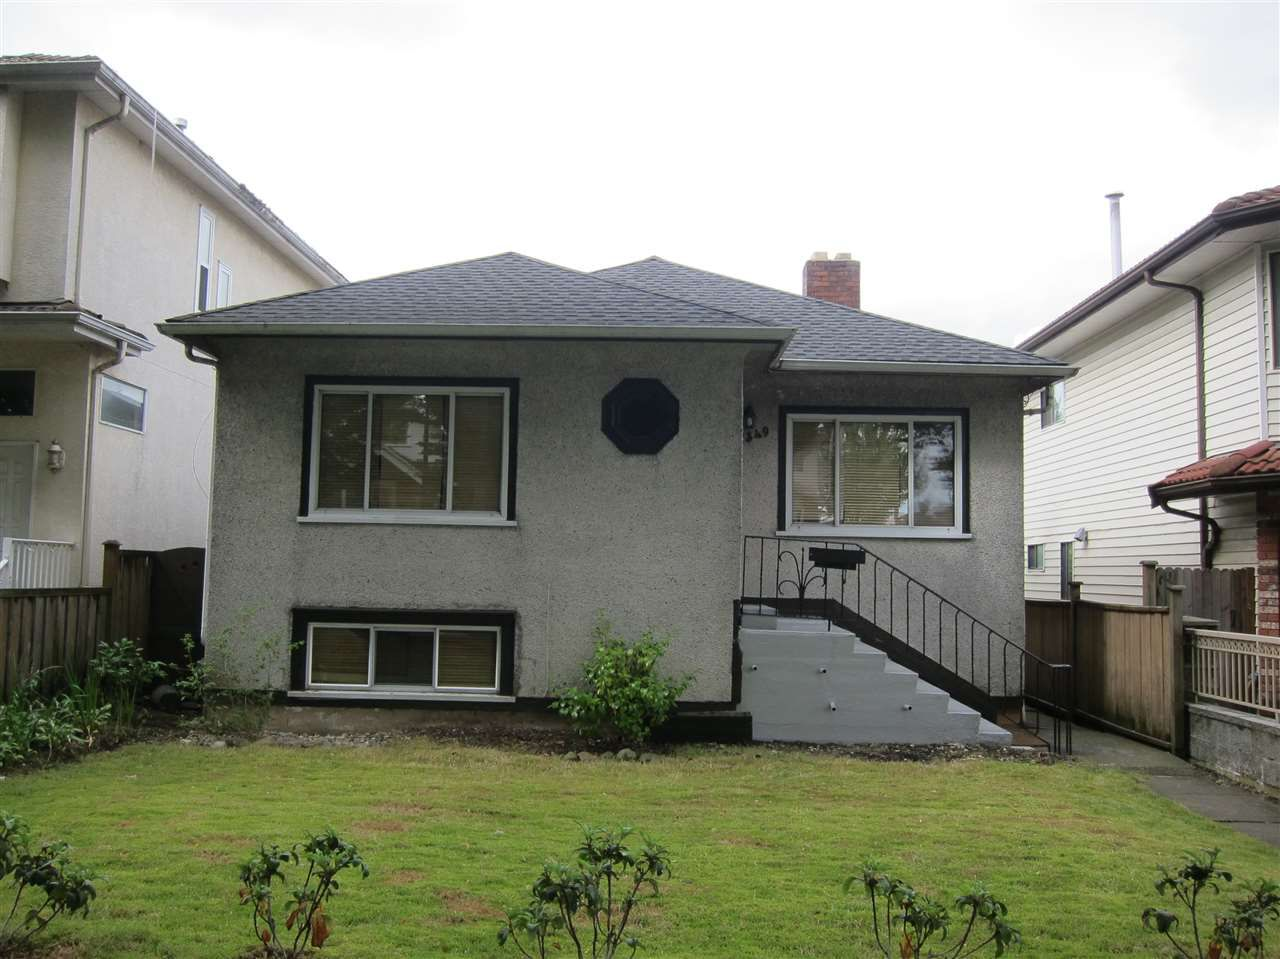 """Main Photo: 1349 E 24TH Avenue in Vancouver: Knight House for sale in """"CEDAR COTTAGE AREA"""" (Vancouver East)  : MLS®# R2078291"""